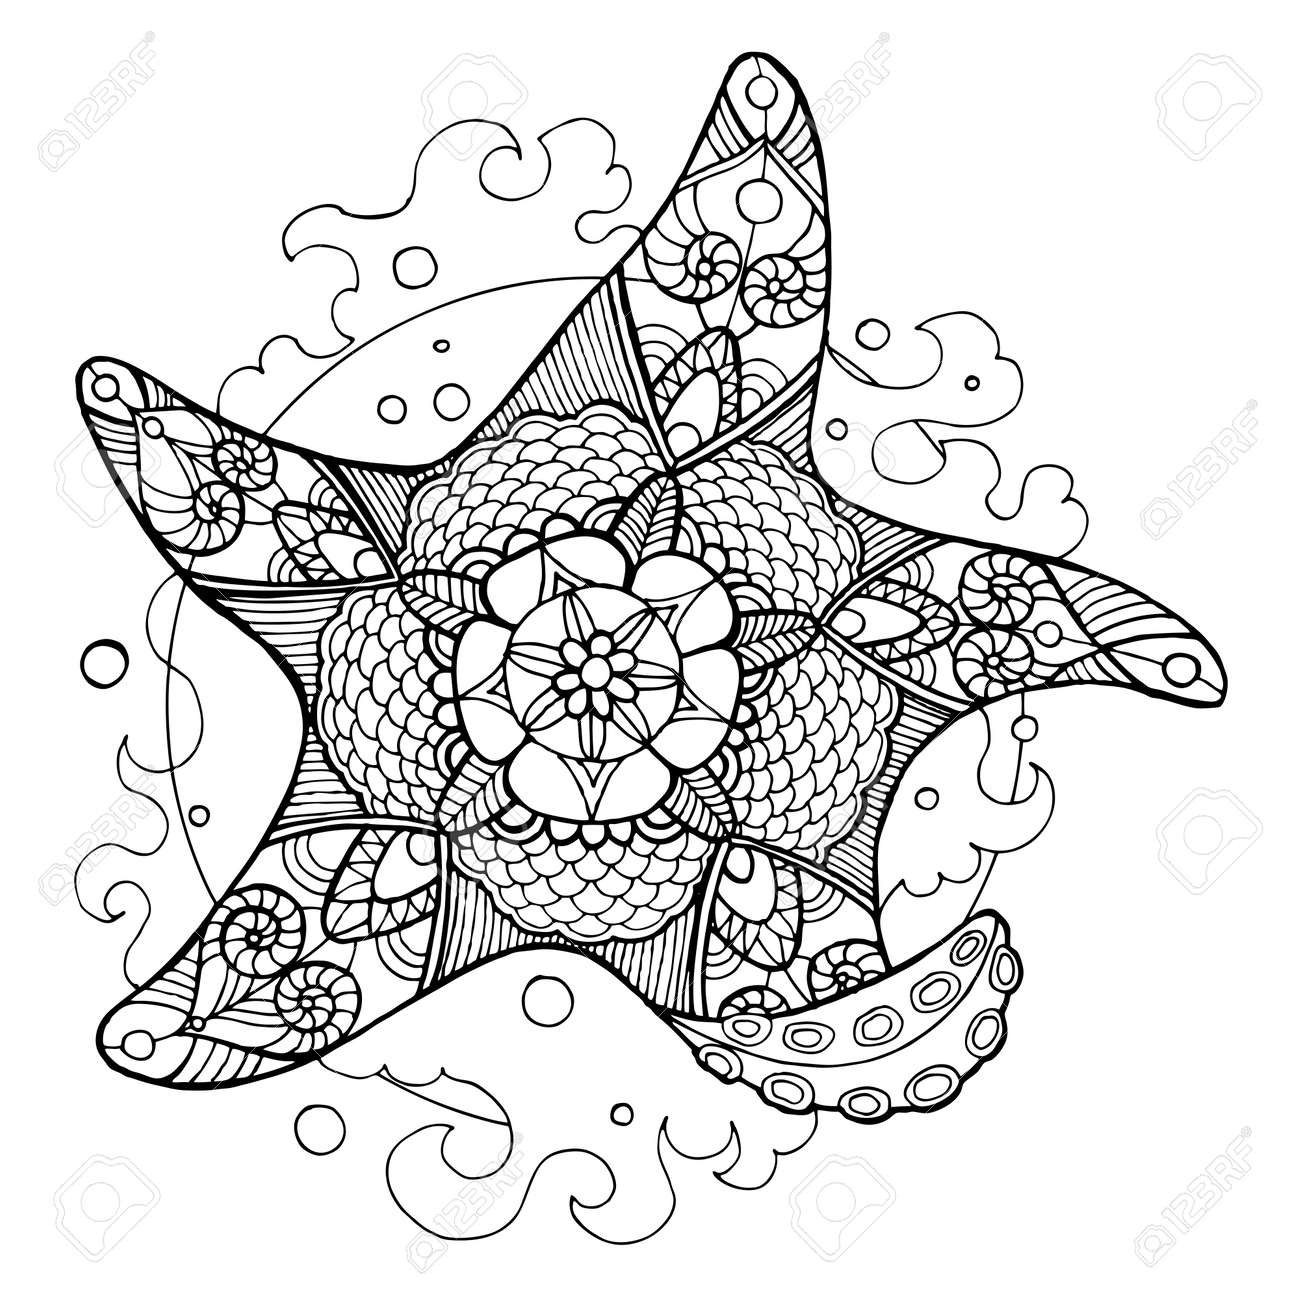 Starfish Coloring Book For Adults Vector Illustration Anti Stress Adult Tattoo